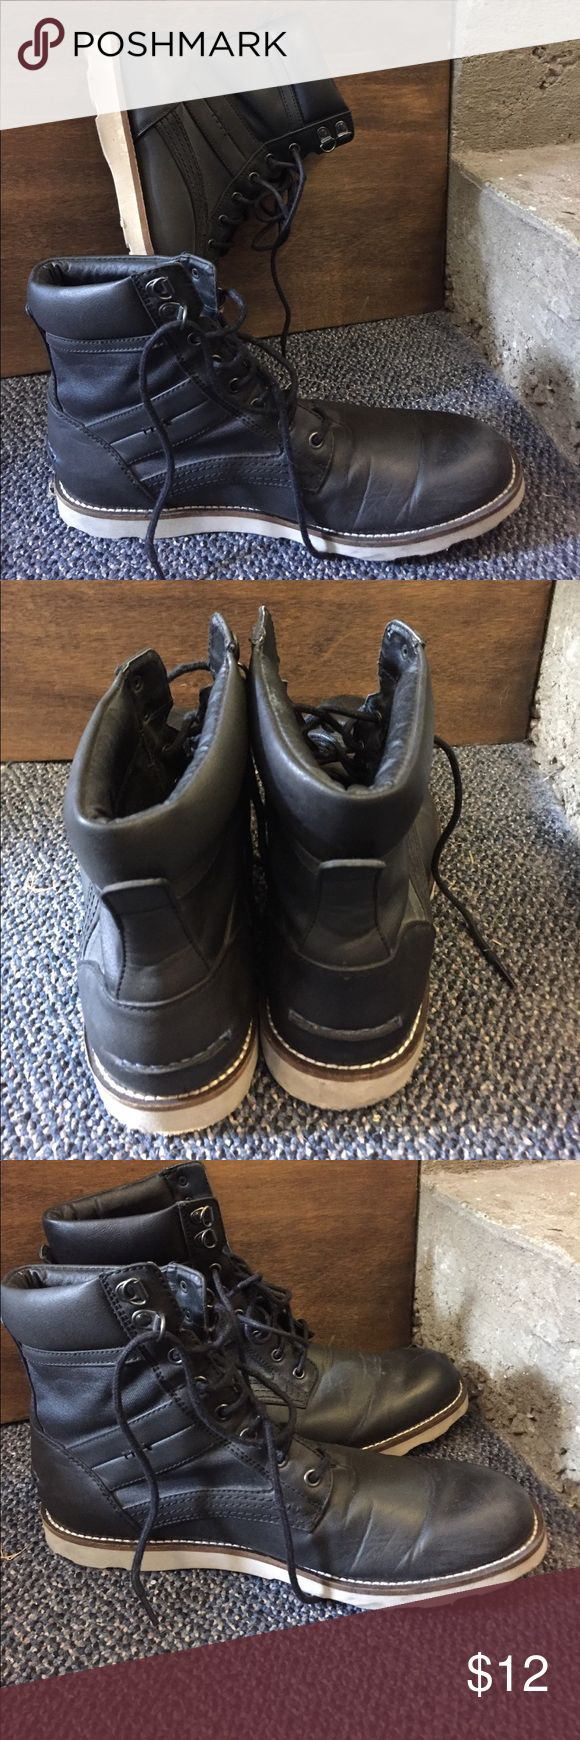 Bar 111 - Black boots size 9.5med Bar 111 - Black Chukka boots . 9.5 Med - slightly worn Bar III Shoes Chukka Boots